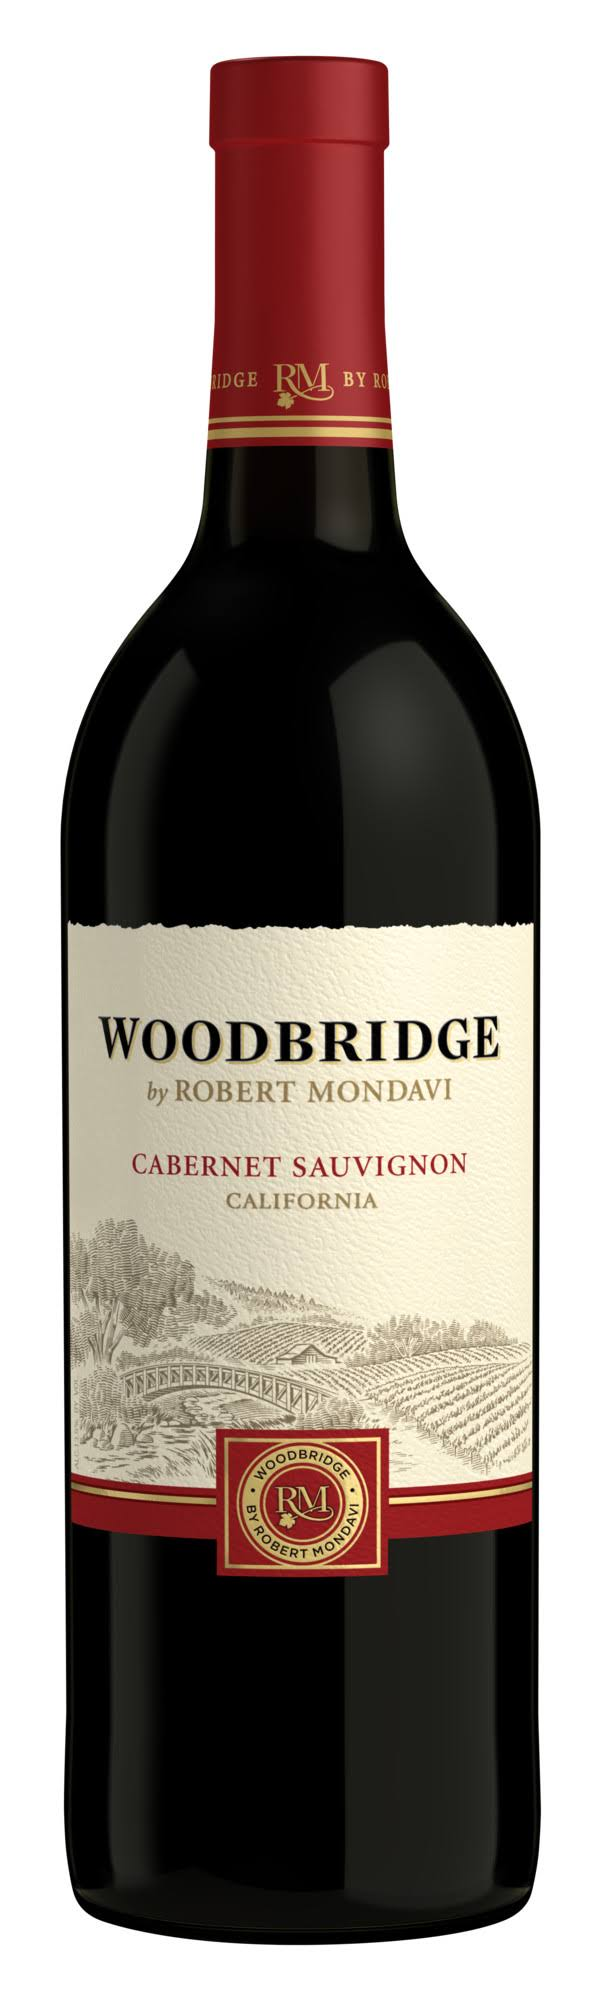 Woodbridge by Robert Mondavi Cabernet Sauvignon - California, USA